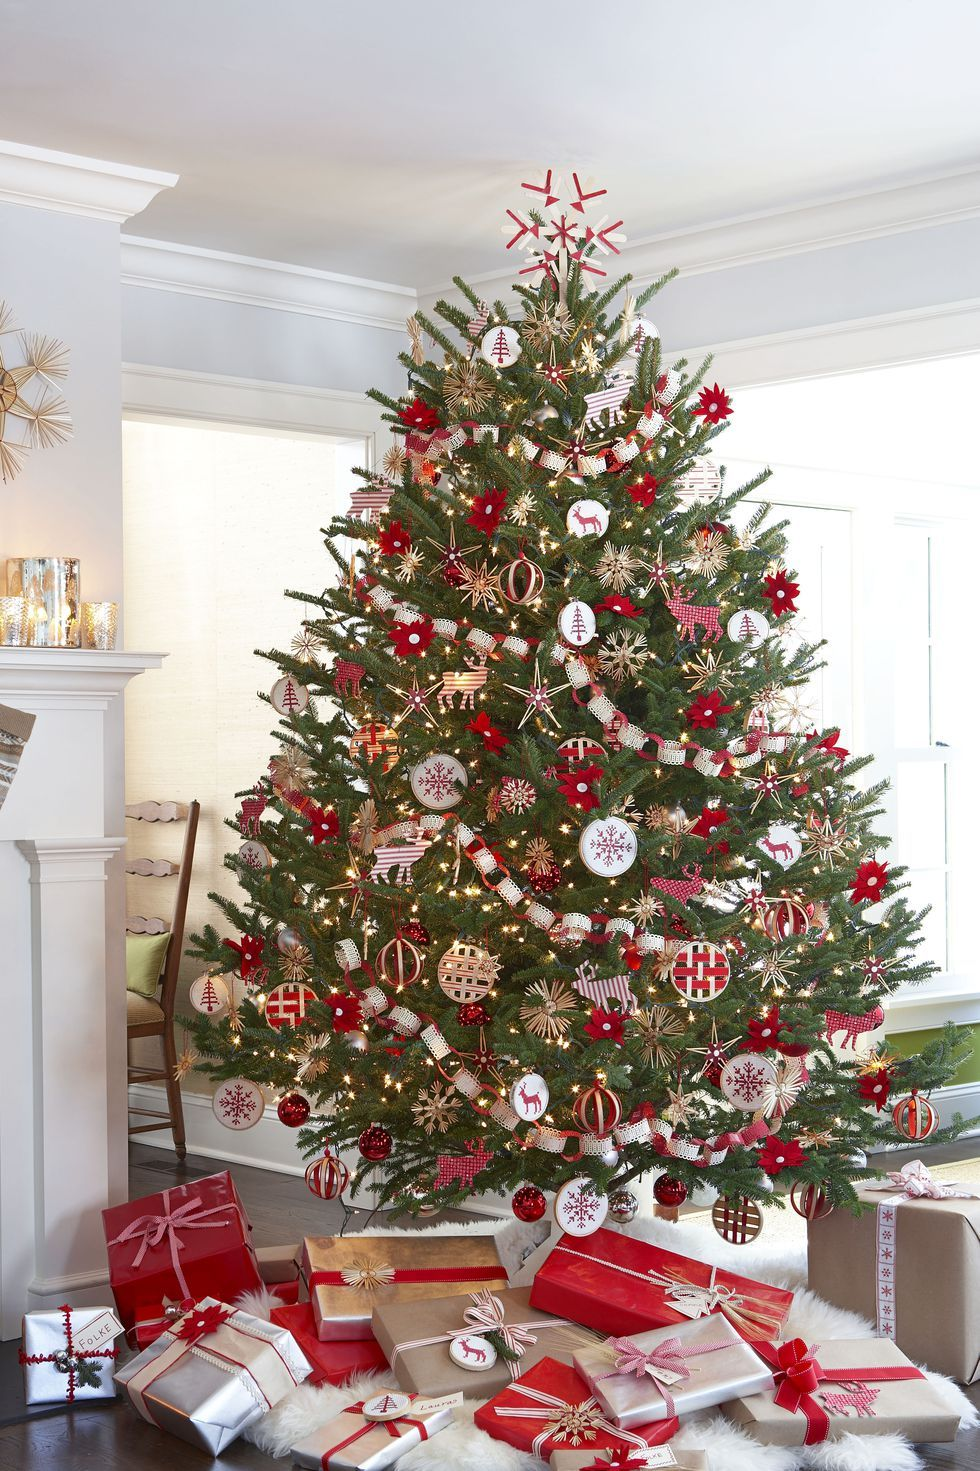 30 Prettiest Christmas Tree Ideas to Try This Year | A Very Merry ...